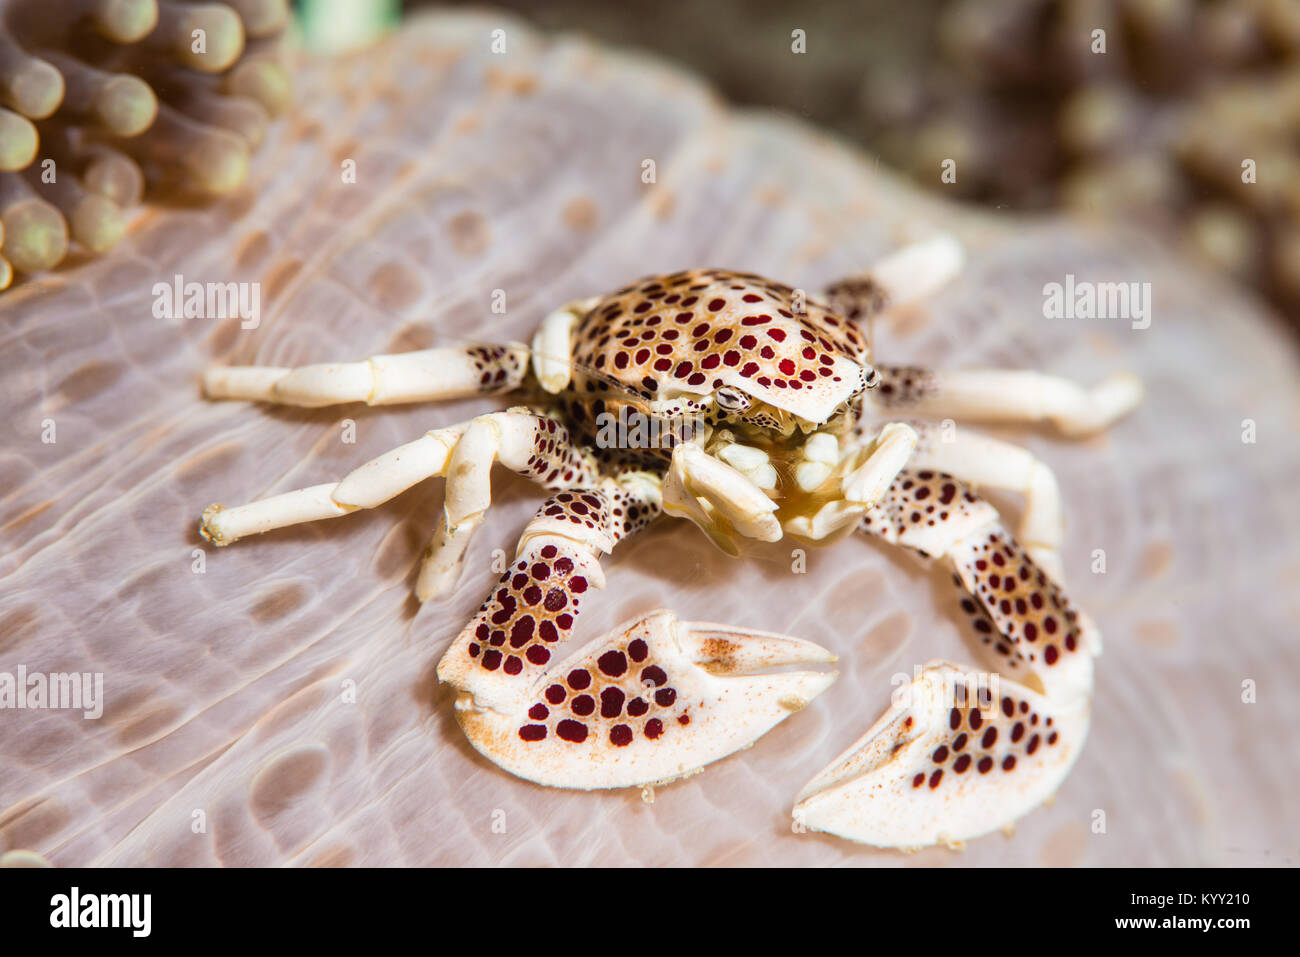 Porcelain crab leaving in the anemone where it hides for safety and in exchange protect the host from parasite resulting - Stock Image